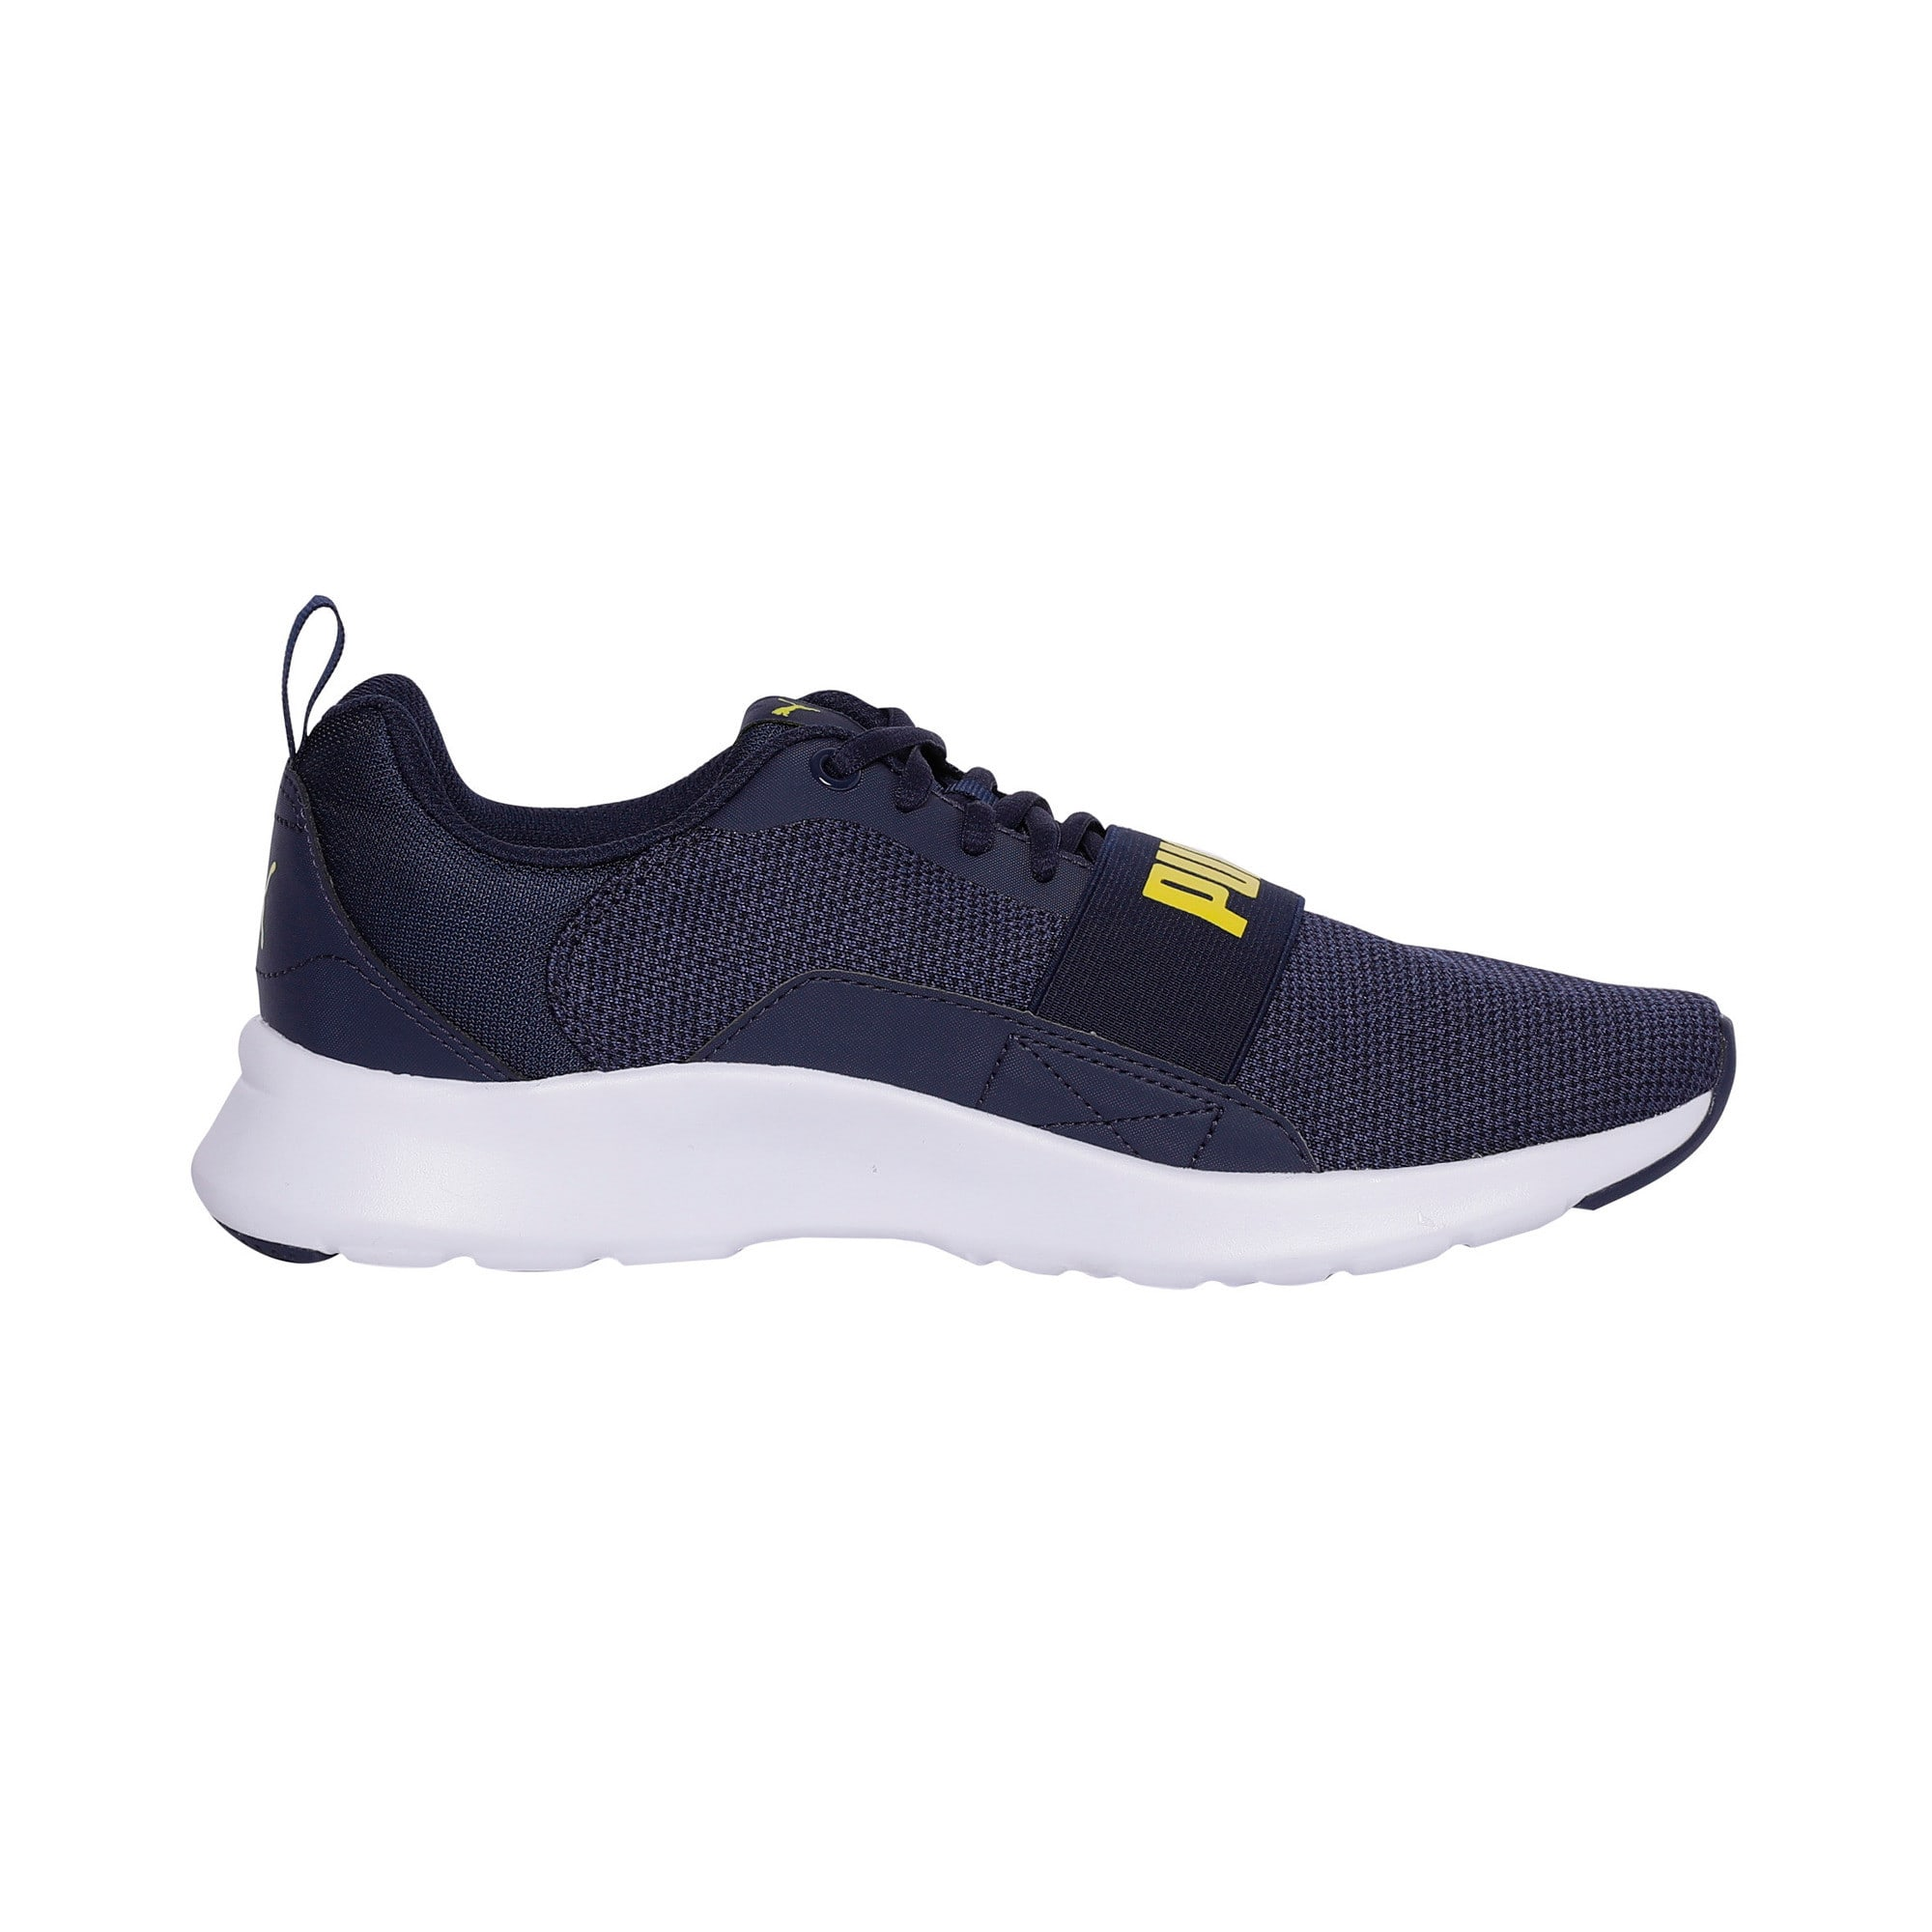 Thumbnail 5 of Wired Knit Trainers, Peacoat-Blazing Yellow, medium-IND